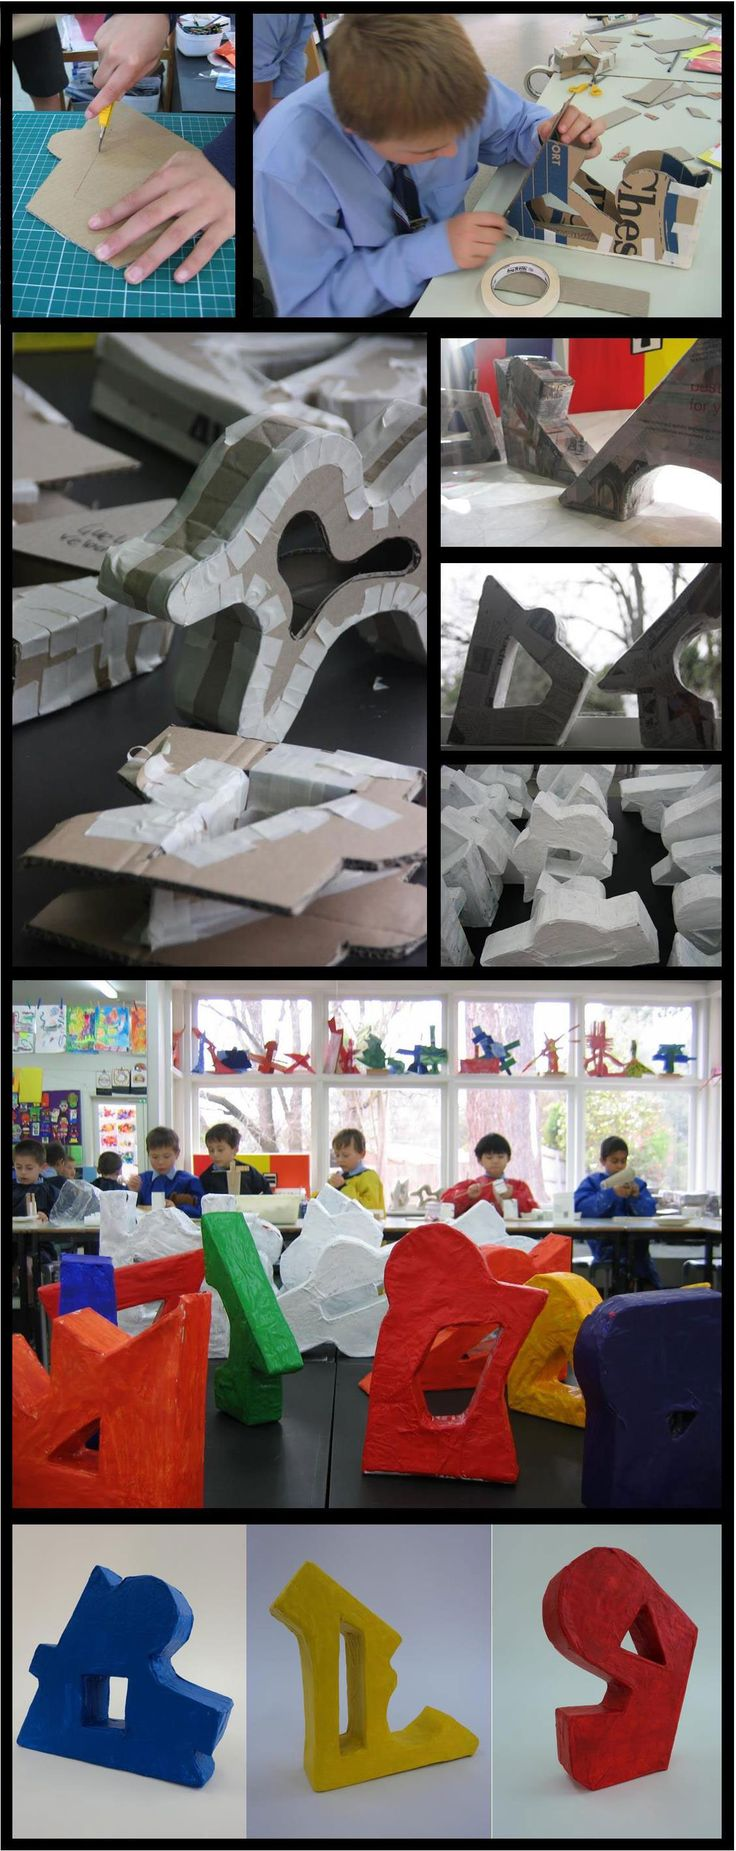 Fun kid project (or crafty adult). Three-dimensional designs using recycled cardboard, masking tape and reused newspaper. This post shows the 5th graders doing the entire project themselves (supervision with the craft knife of course).